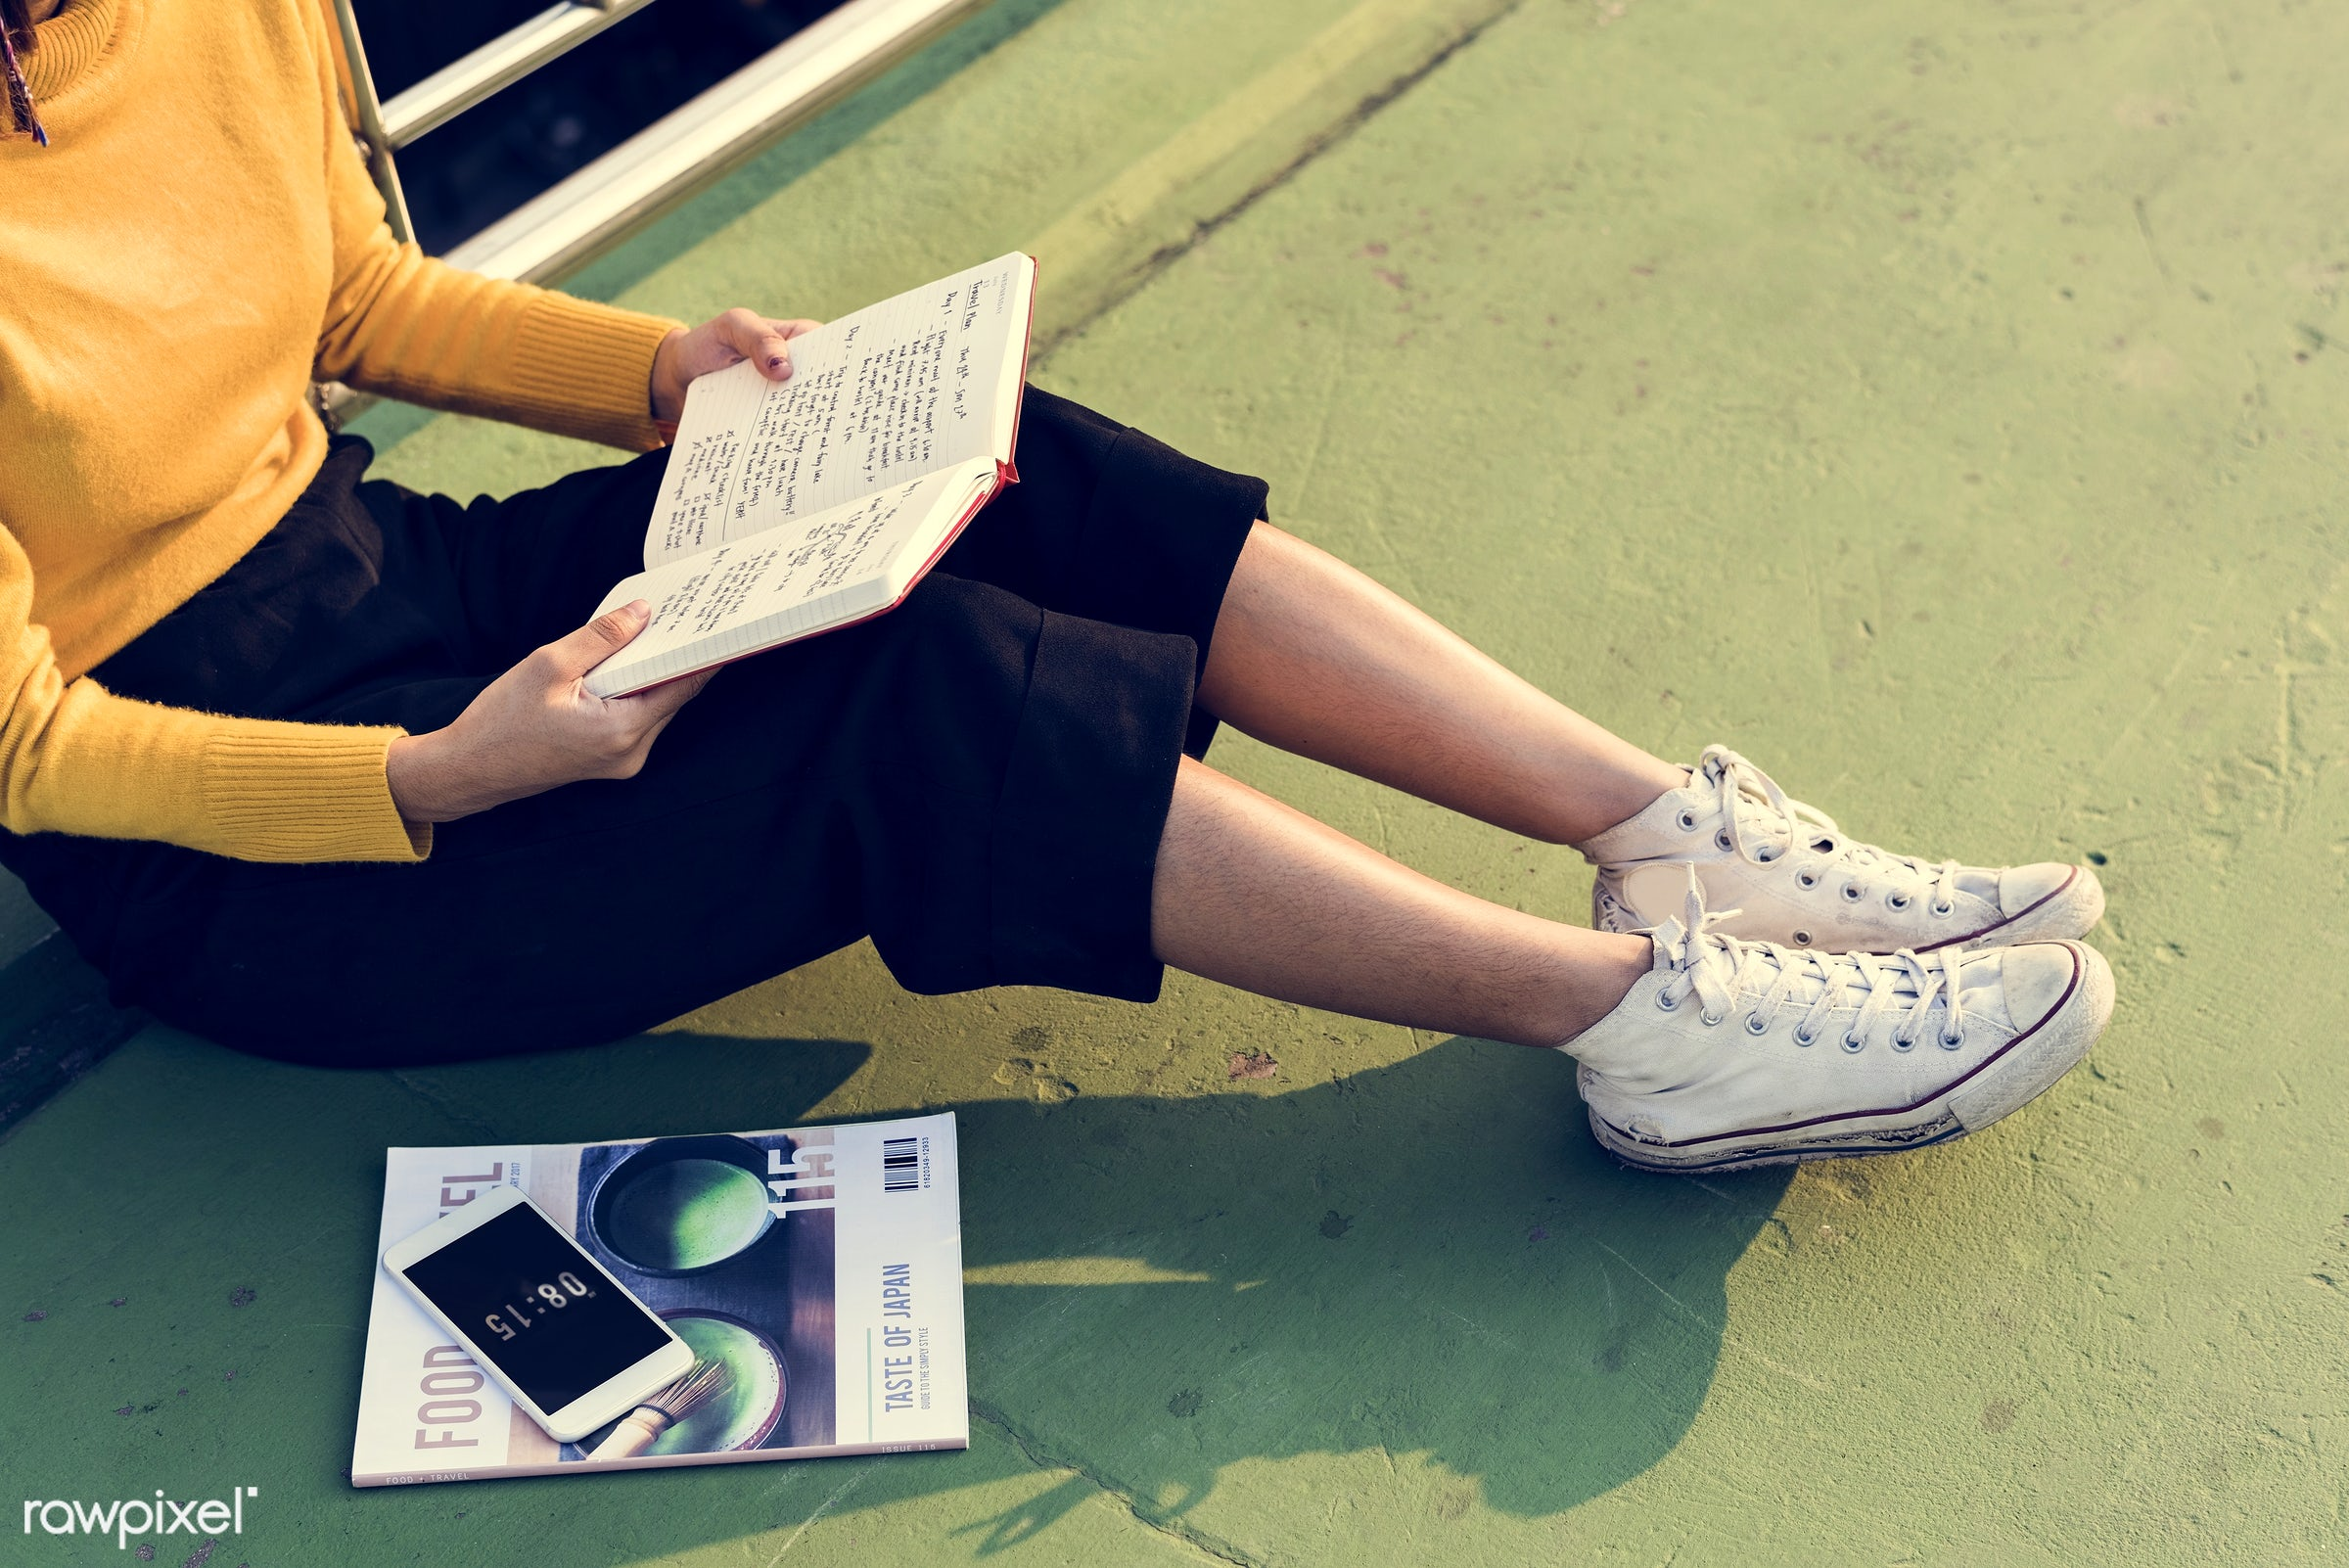 solo, woman, alone, magazine, reading, notebook, sitting, ground, leisure, hobby, outdoors, recreation, relaxation